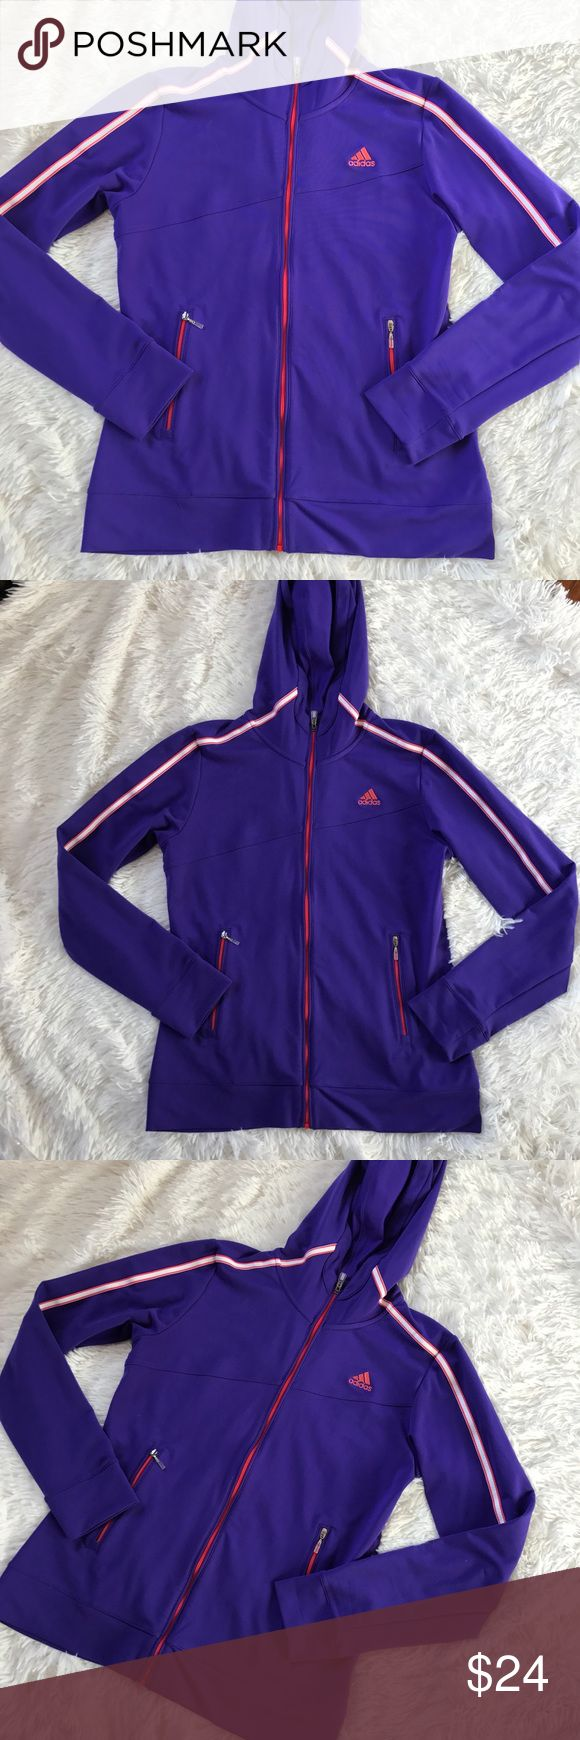 Adidas ClimaLite Purple Zip Up Hoodie Adidas ClimaLite Purple Zip Up Hoodie. Advertised for golf but can be used for everyday use too. In excellent pre owned condition. Beautiful colors! Size S. Offers welcome! Bundle up! adidas Tops Sweatshirts & Hoodies